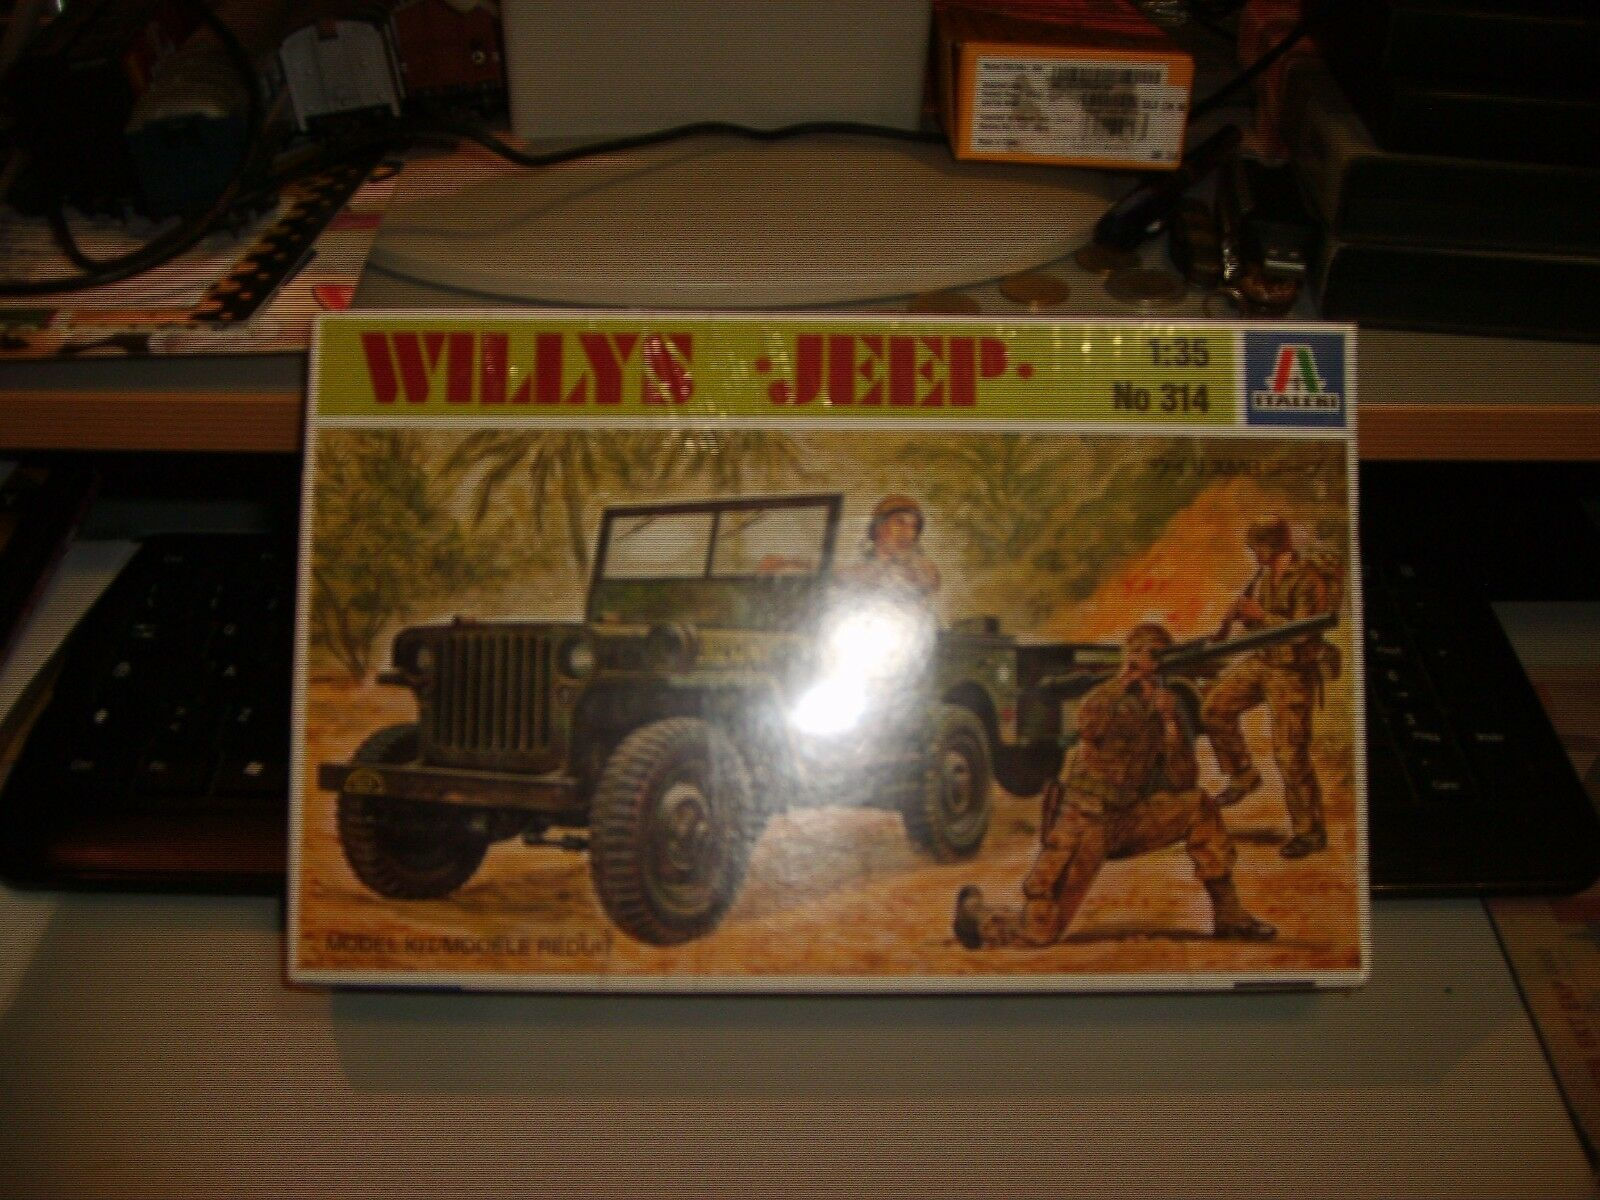 WILLYS JEEP - ITALERI No. 314 - scale scale scale 1 35 mint boxed 67e456